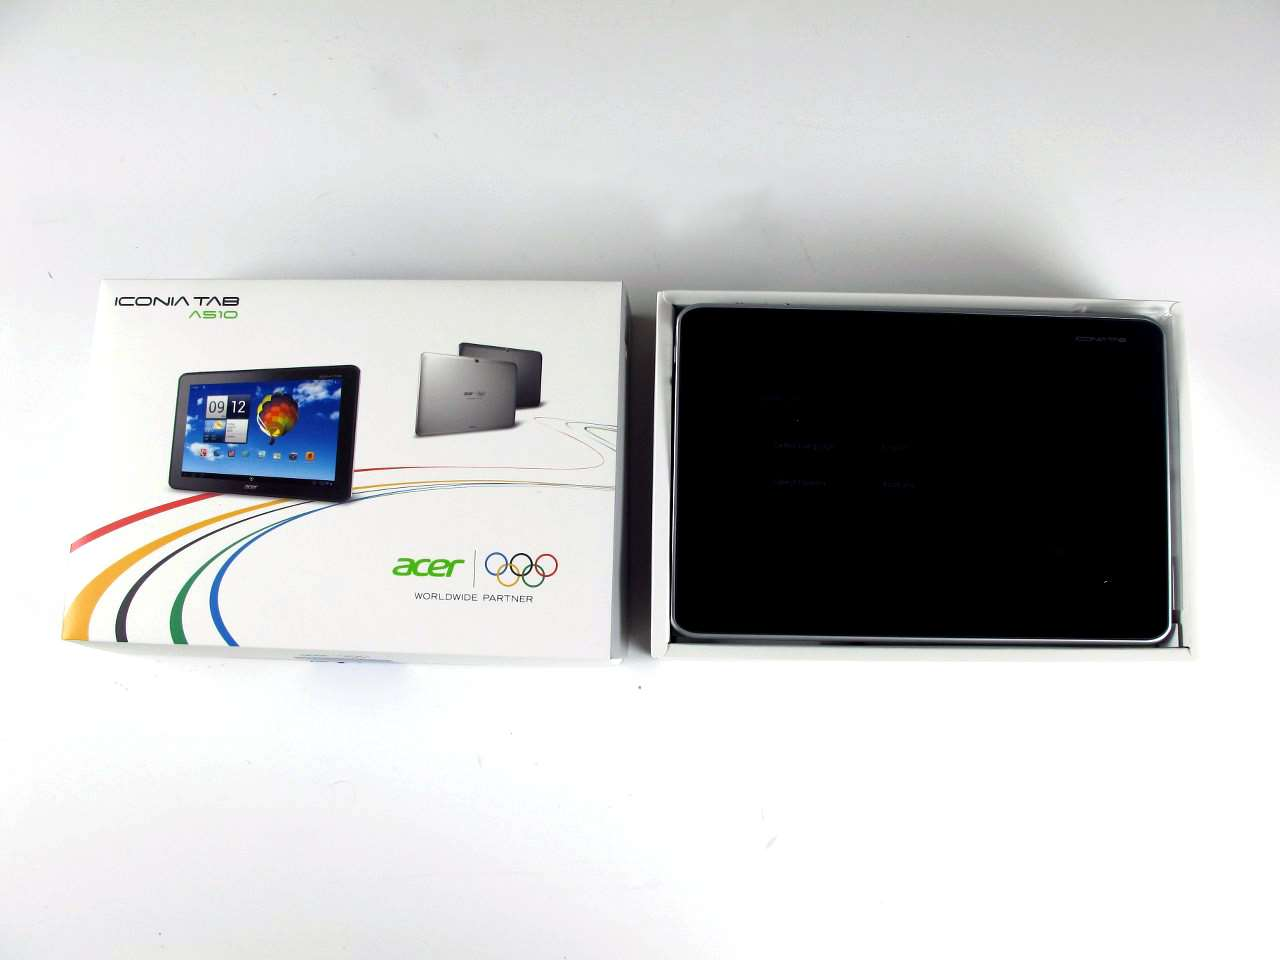 unboxed acer iconia tab a510 pc tech authority. Black Bedroom Furniture Sets. Home Design Ideas